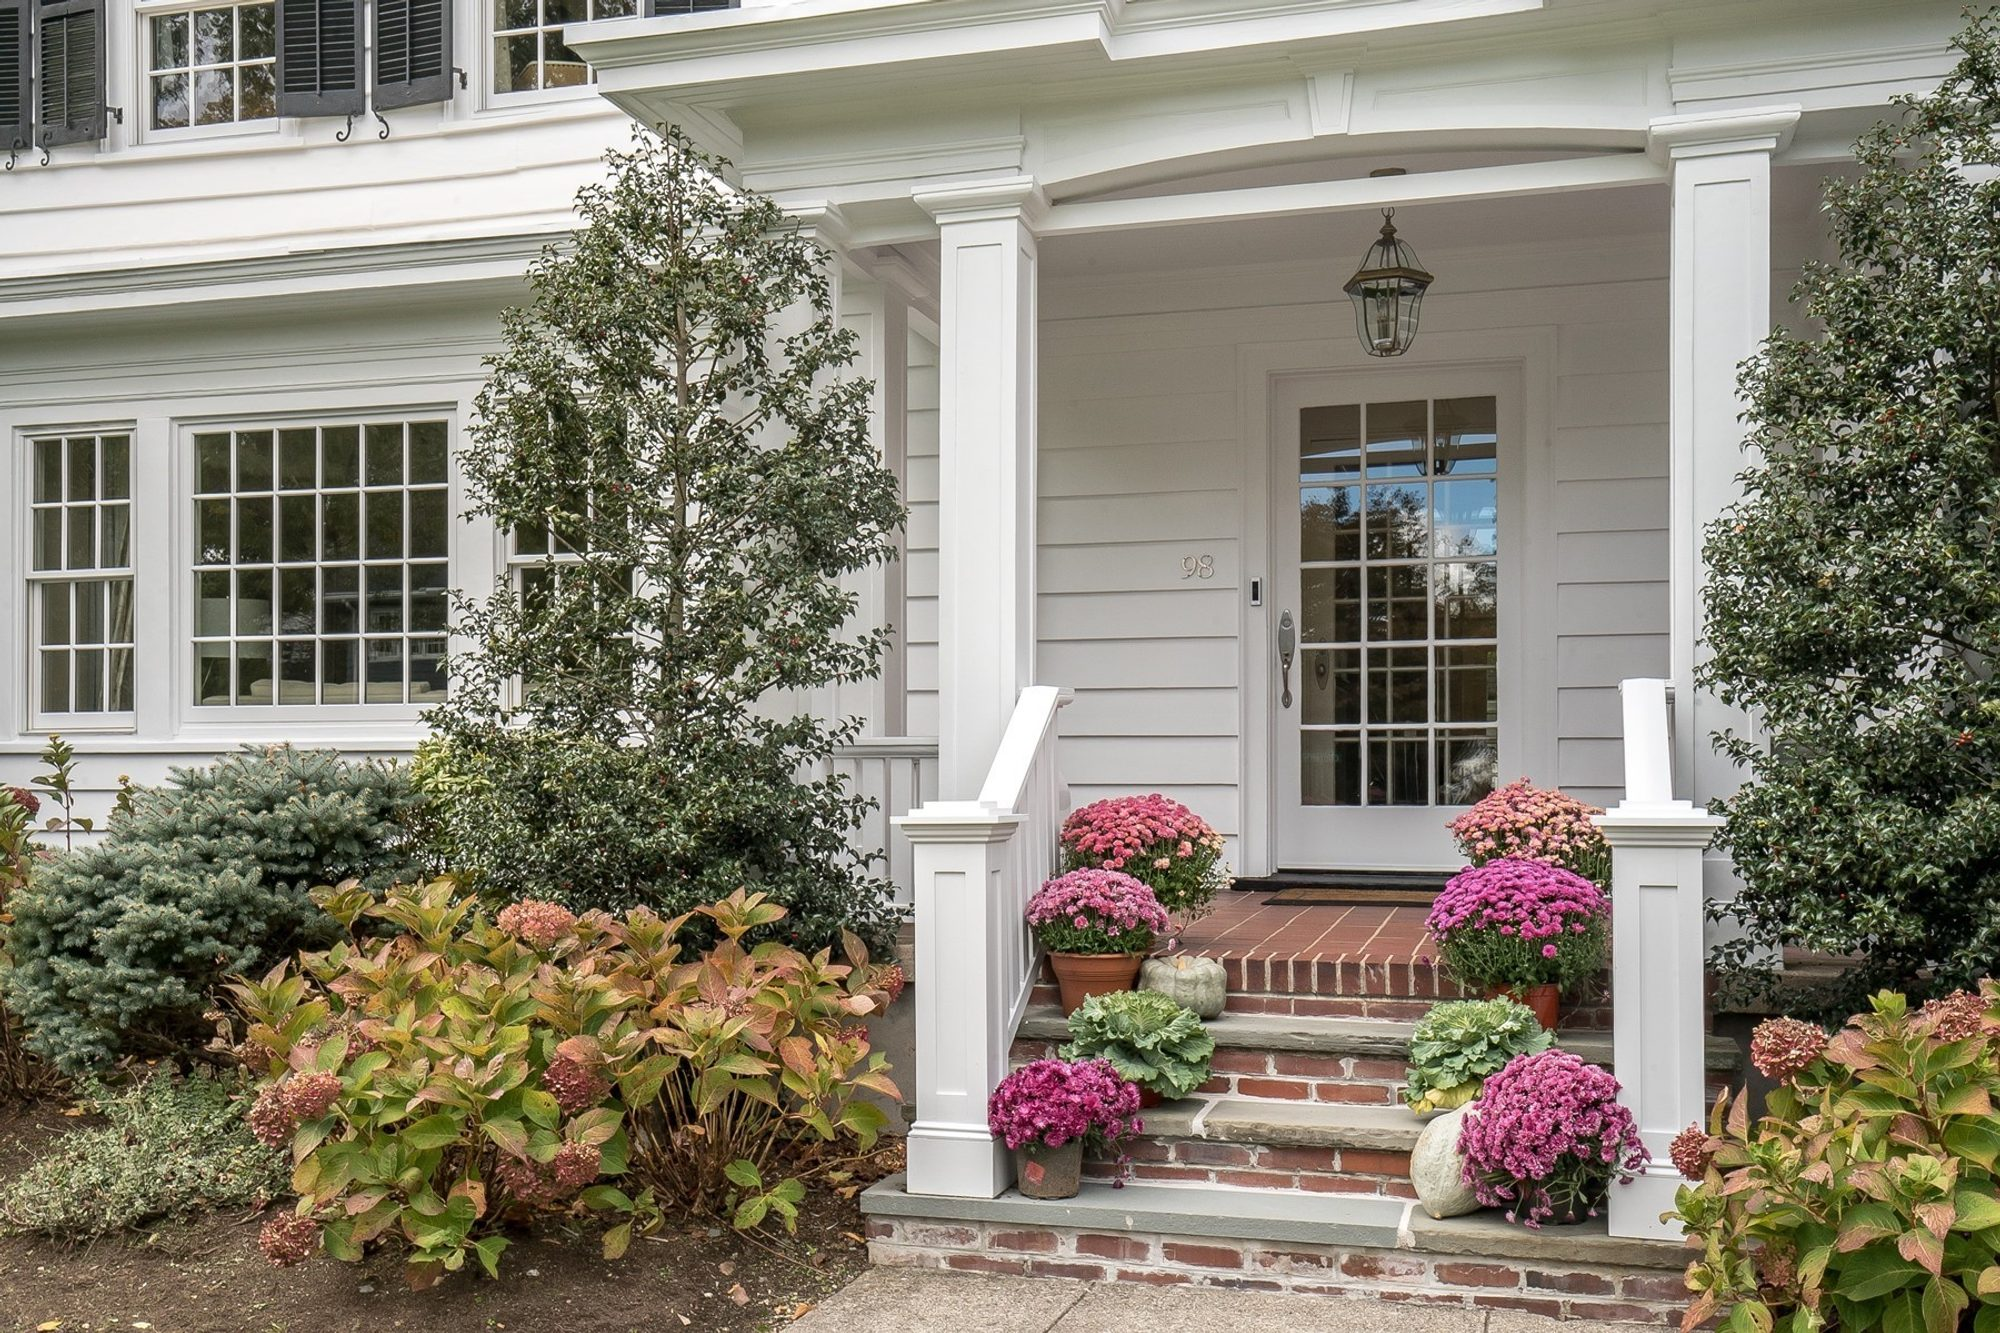 small red brick front covered porch with white columns and railings, stair flowers, simple pots, landscaping, white house black shutters